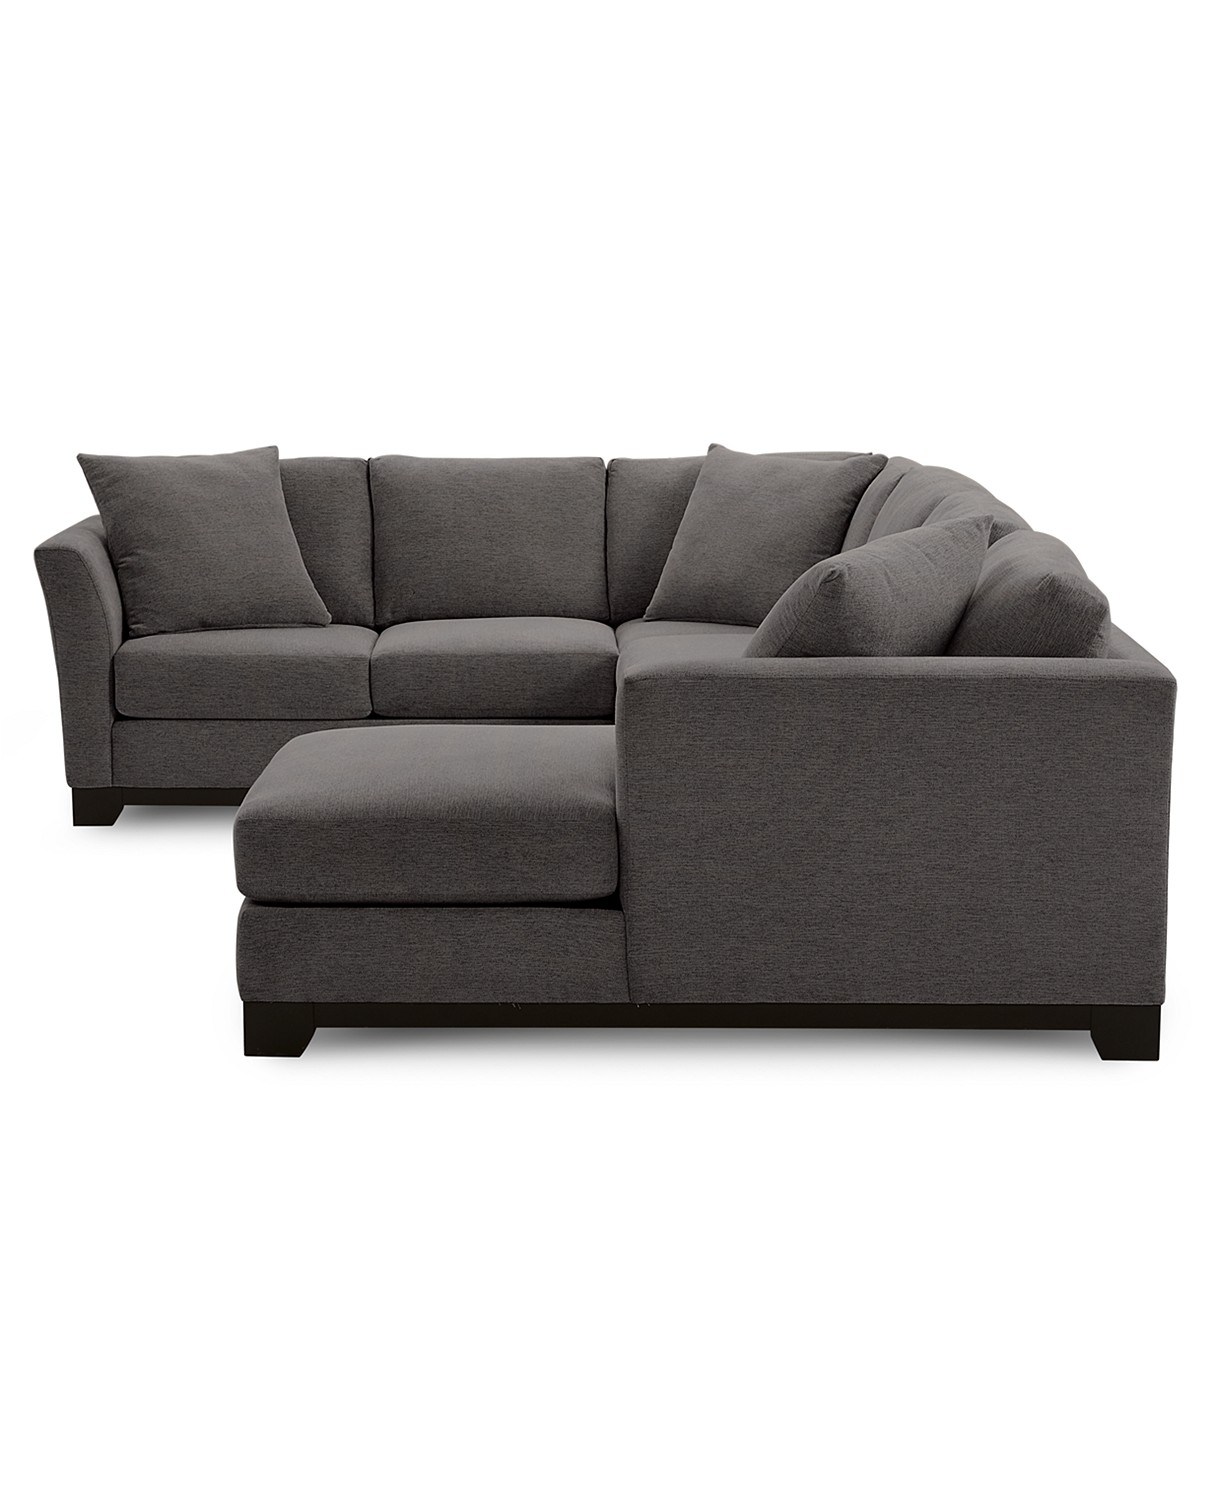 "41% Off Elliot II 138"" Fabric 3-Pc Chaise Sectional"